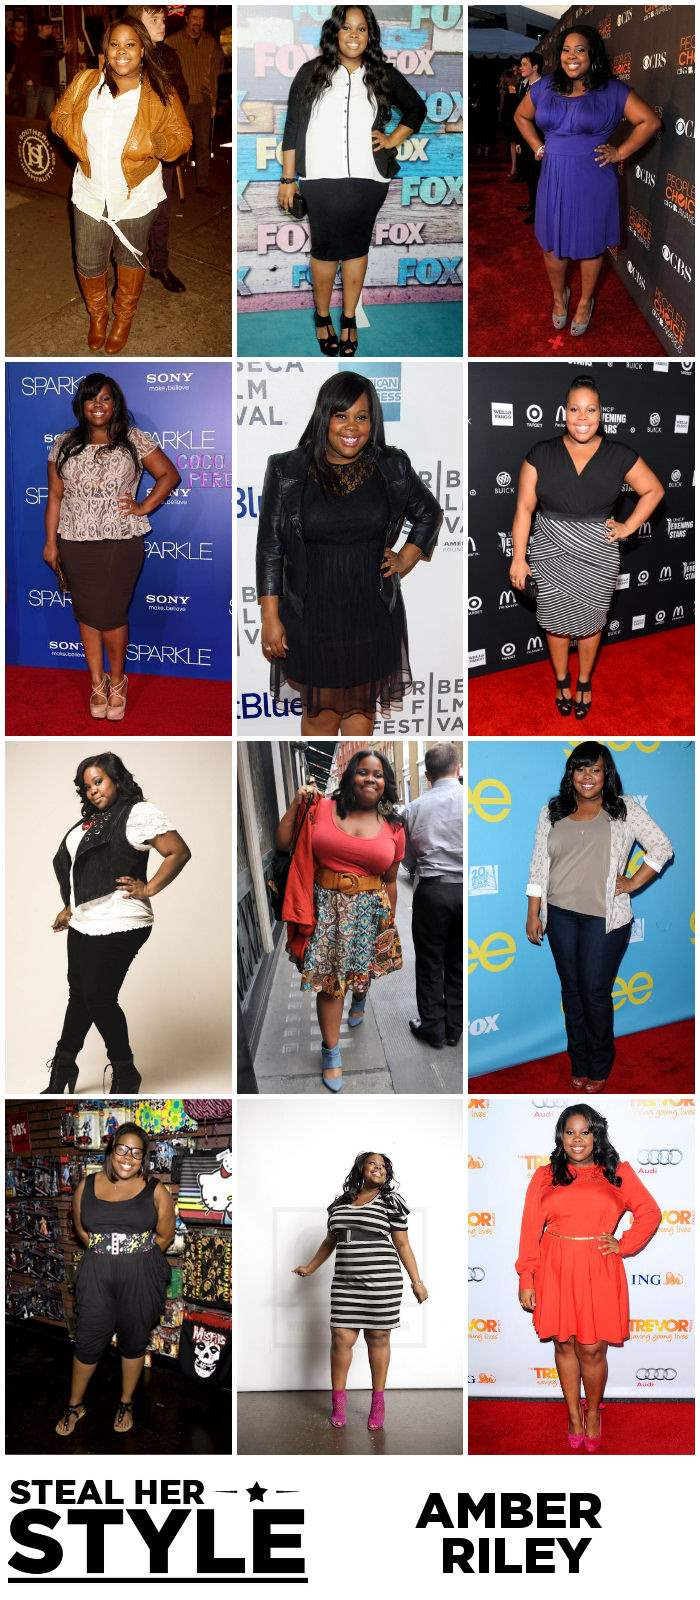 Amber Riley Steal Her Style Collage